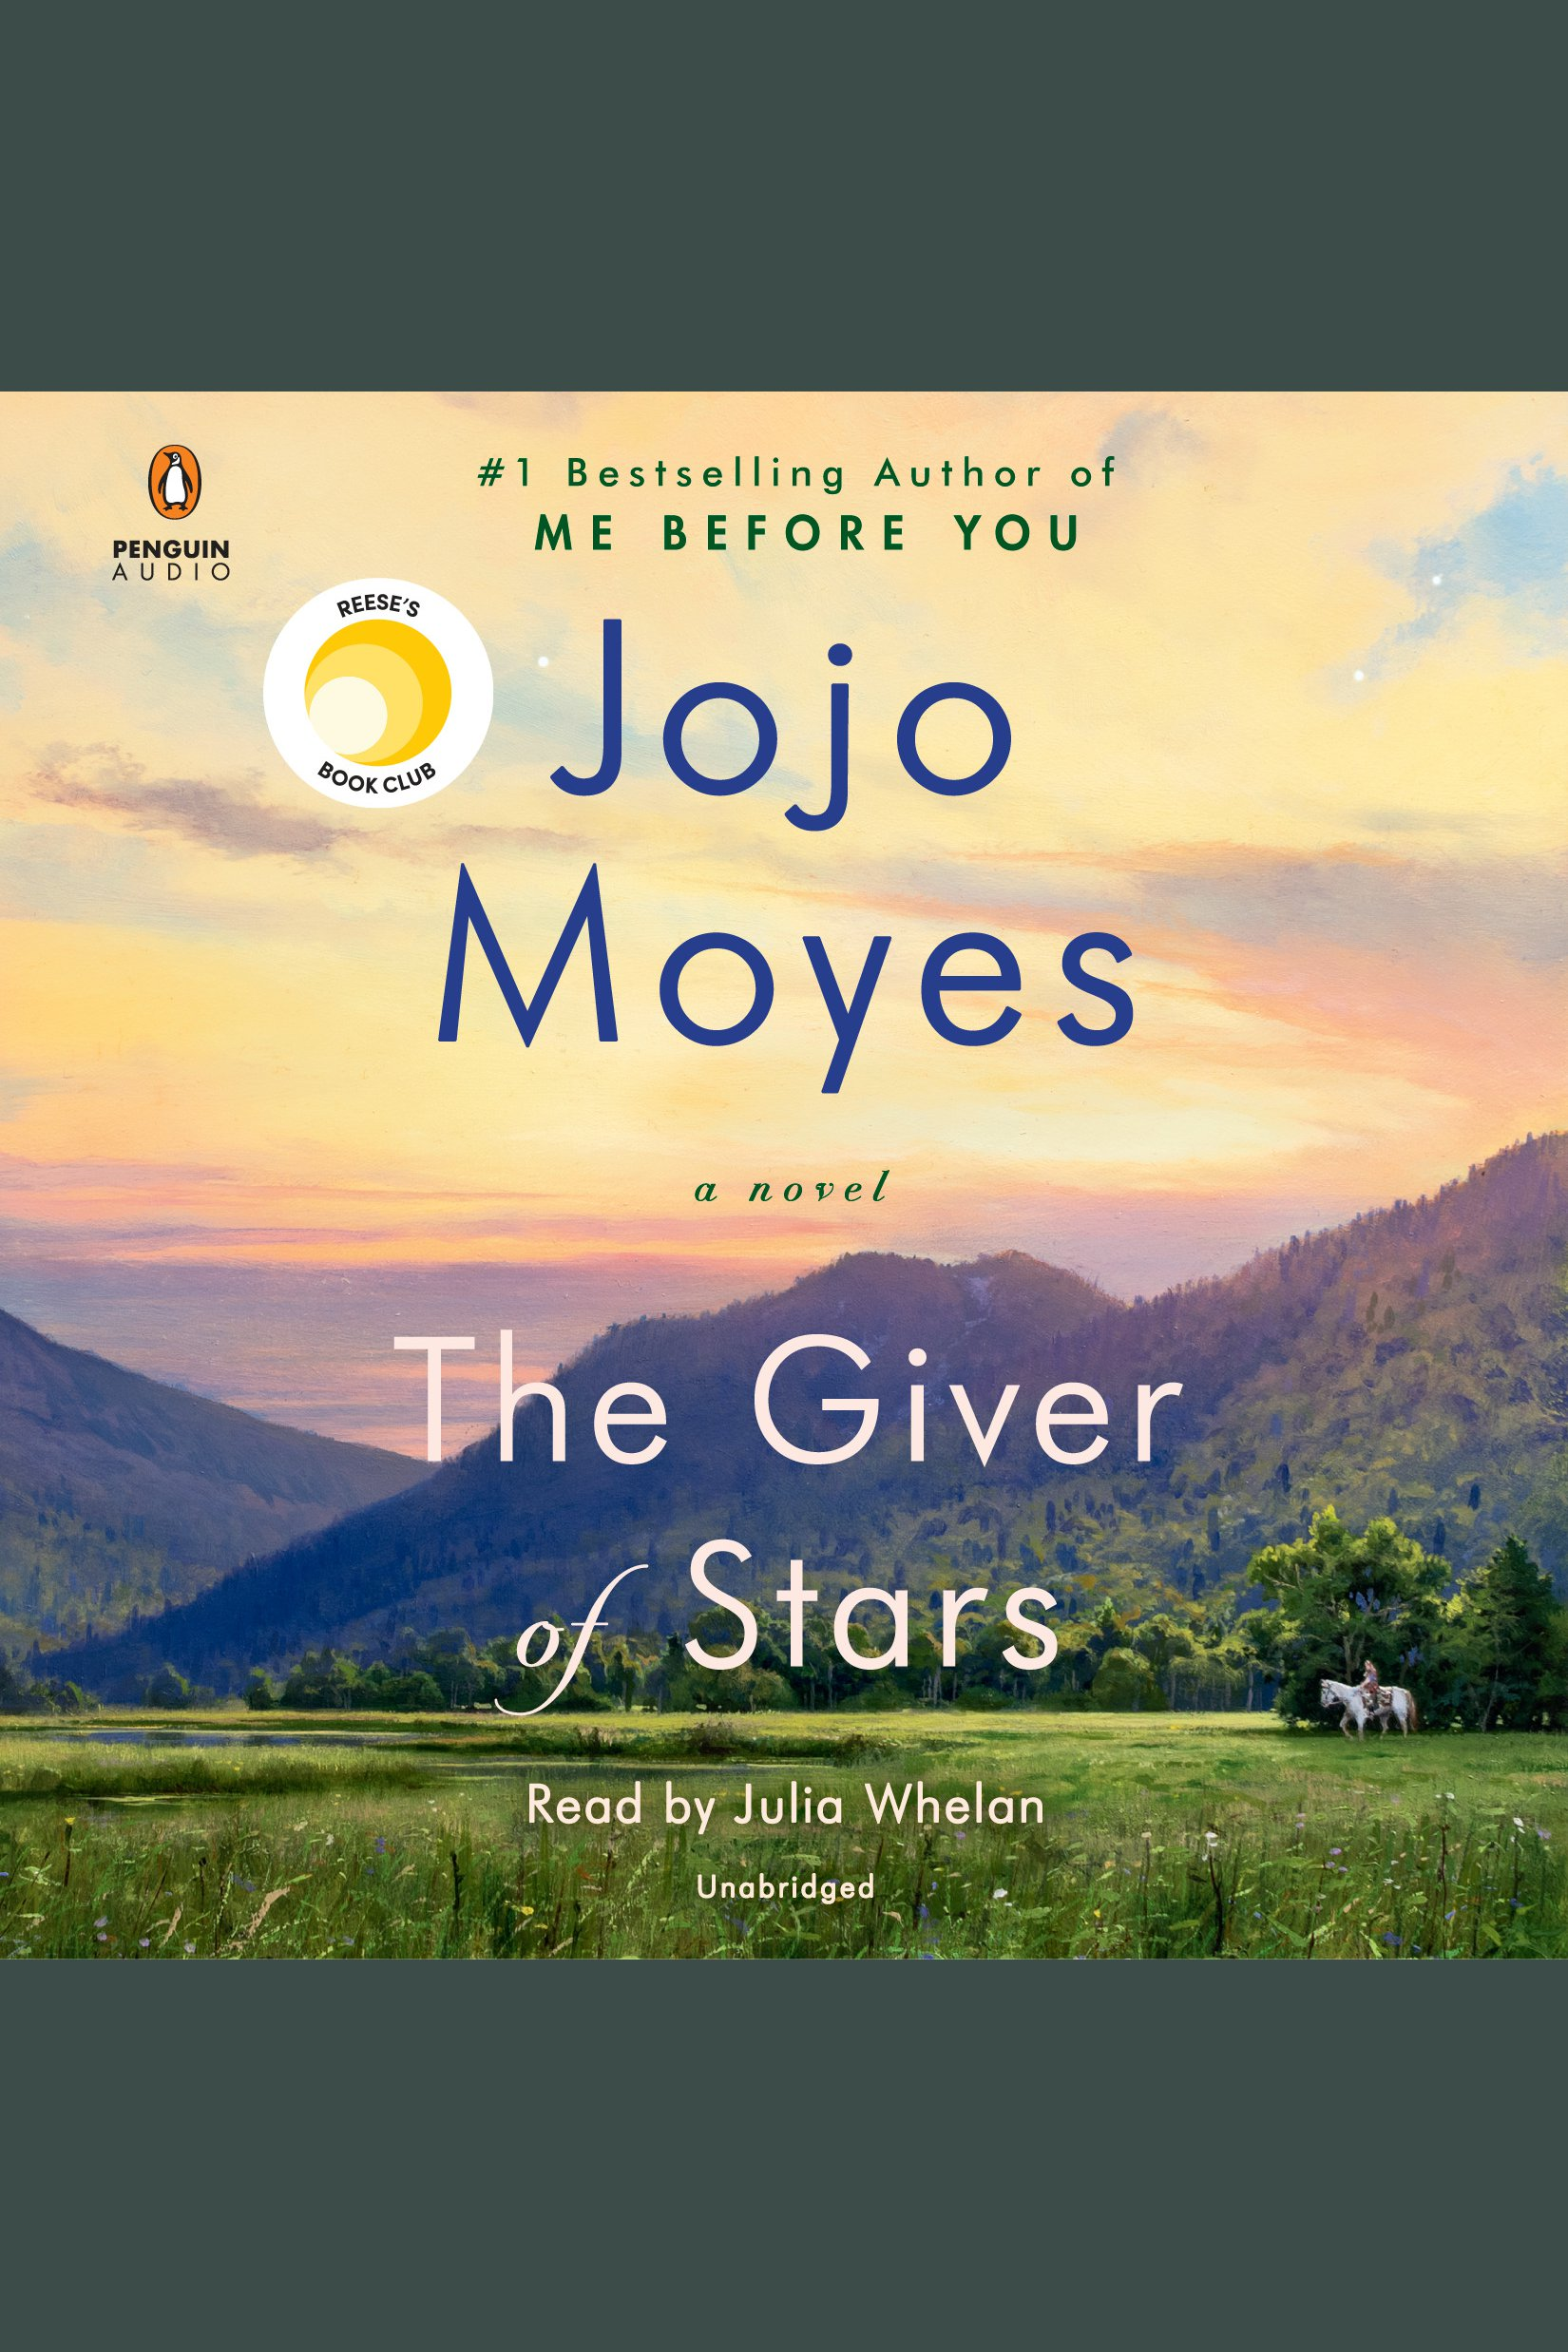 Giver of Stars, The A Novel